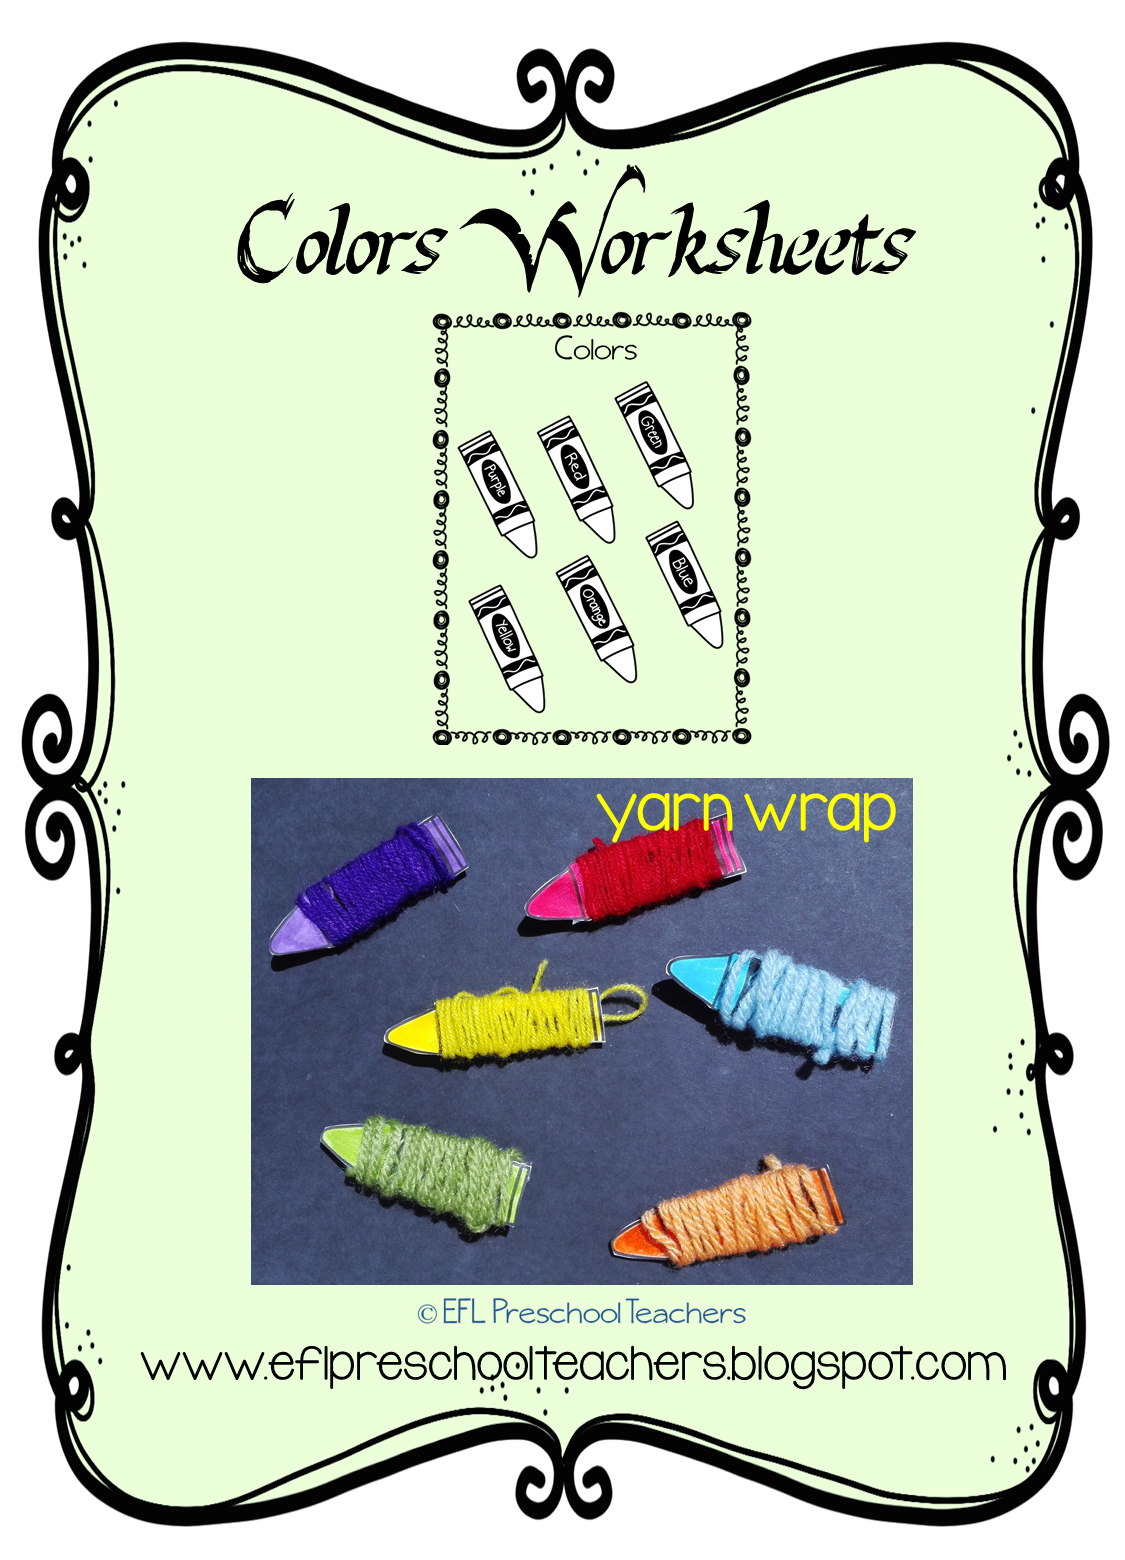 ESL/EFL Preschool Teachers: Color Worksheets